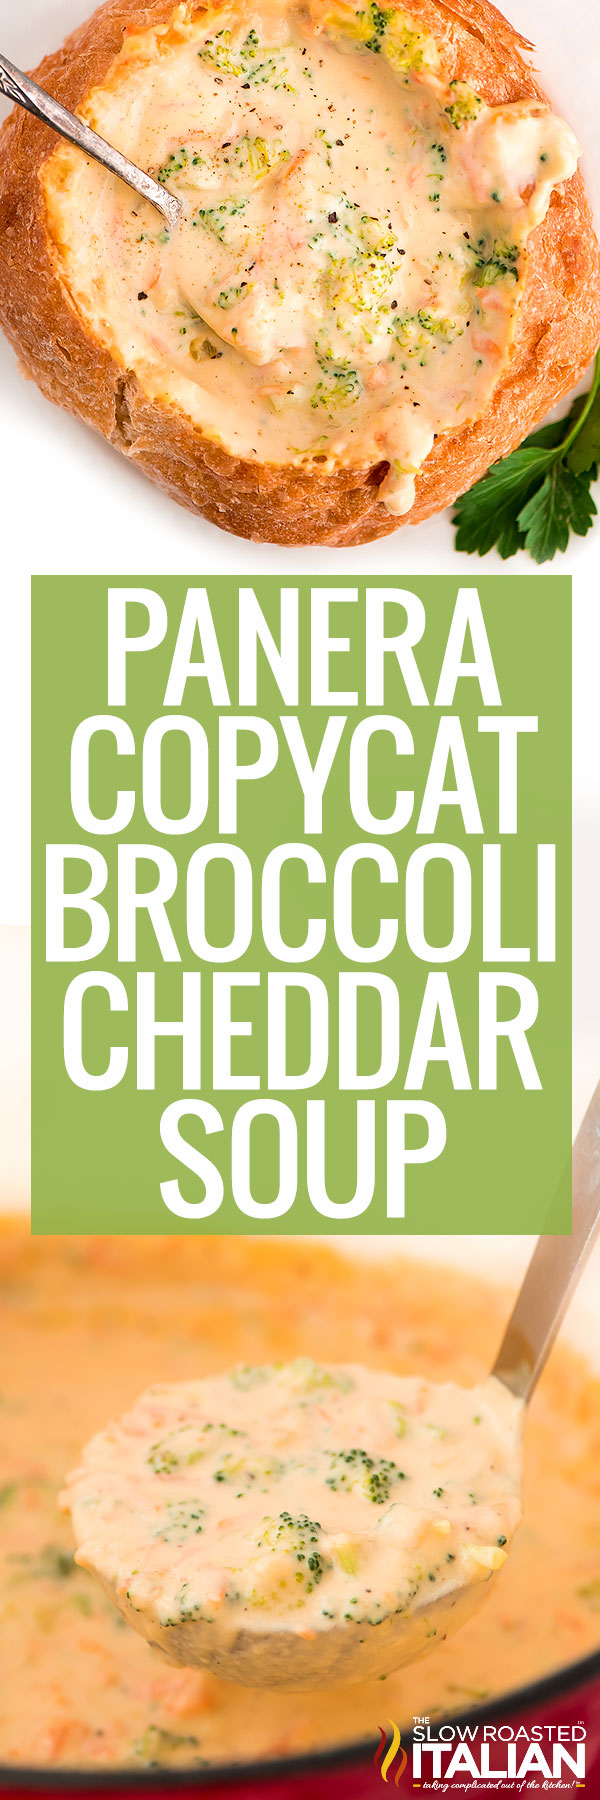 titled photo (and shown in bread bowl): Panera Copycat Broccoli Cheddar Soup